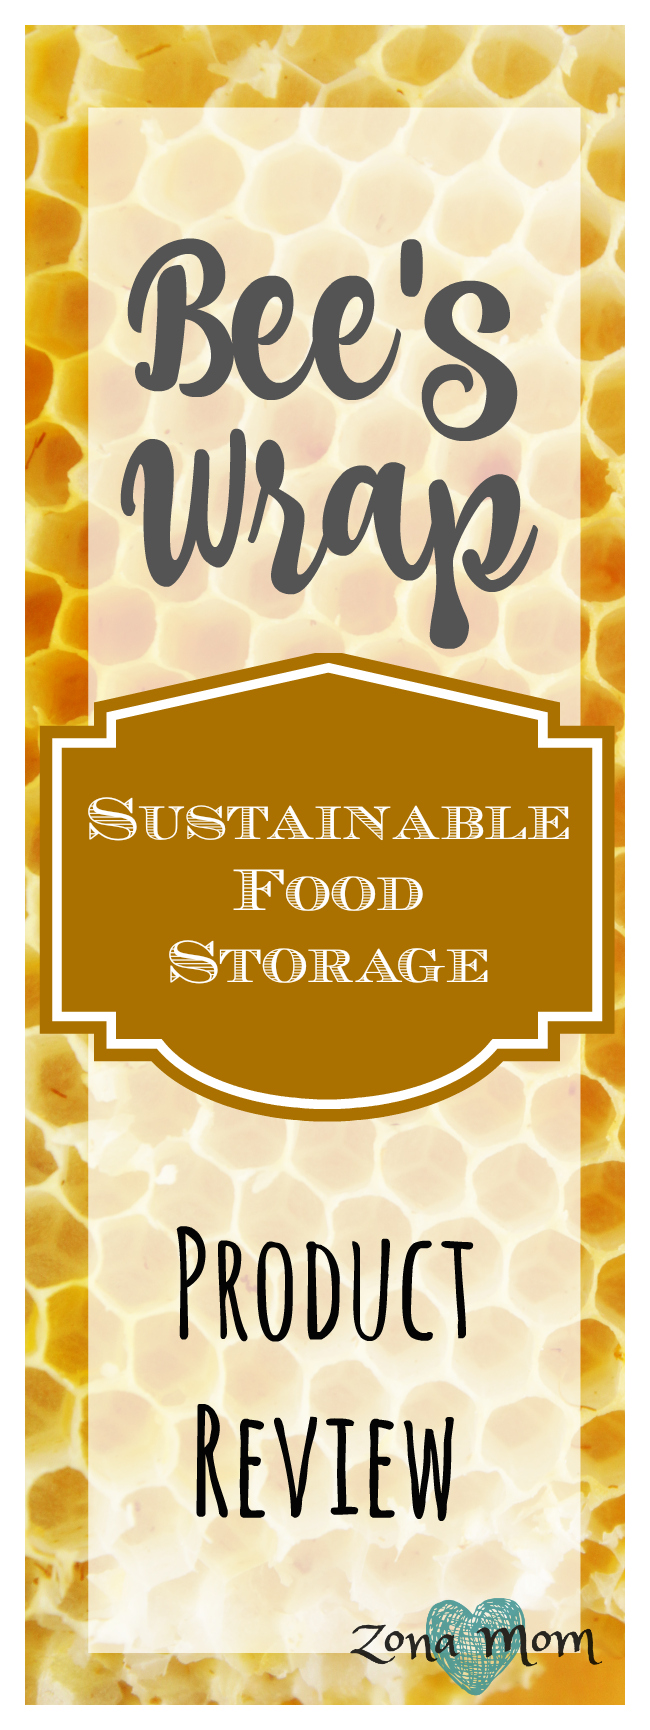 Bee's Wrap | Reusable Food Wrap | Cloth Food Wrap | Bee's Wax Food Wrap | Sustainable Food Storage | Environmentally Friendly | All Natural Food Storage | Product Review